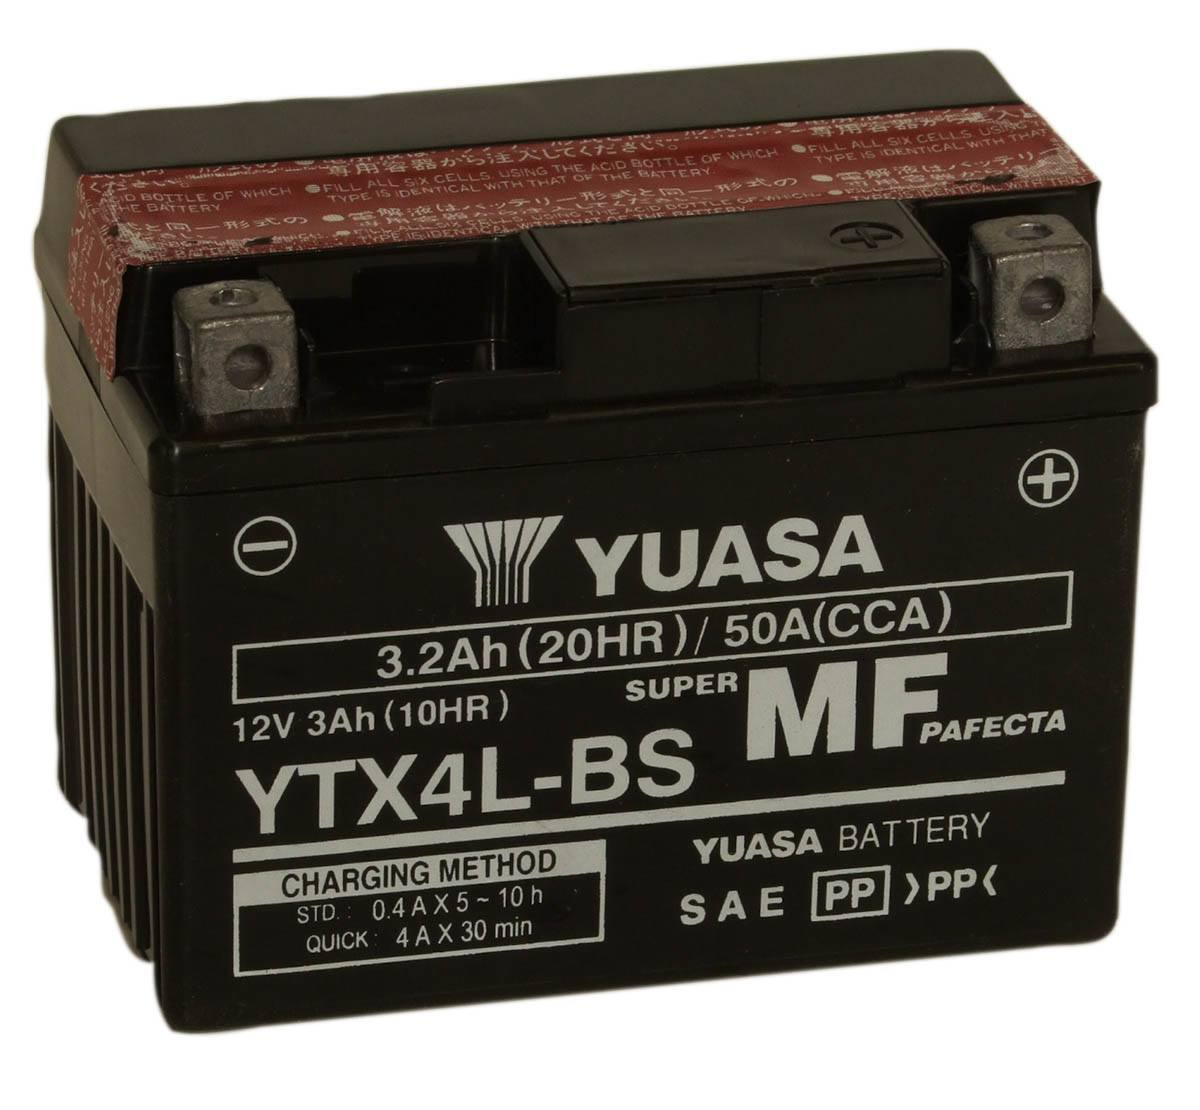 Get it delivered to your door - Yuasa YTX4L-BS Battery (Taiwan) - 600 (EGP)